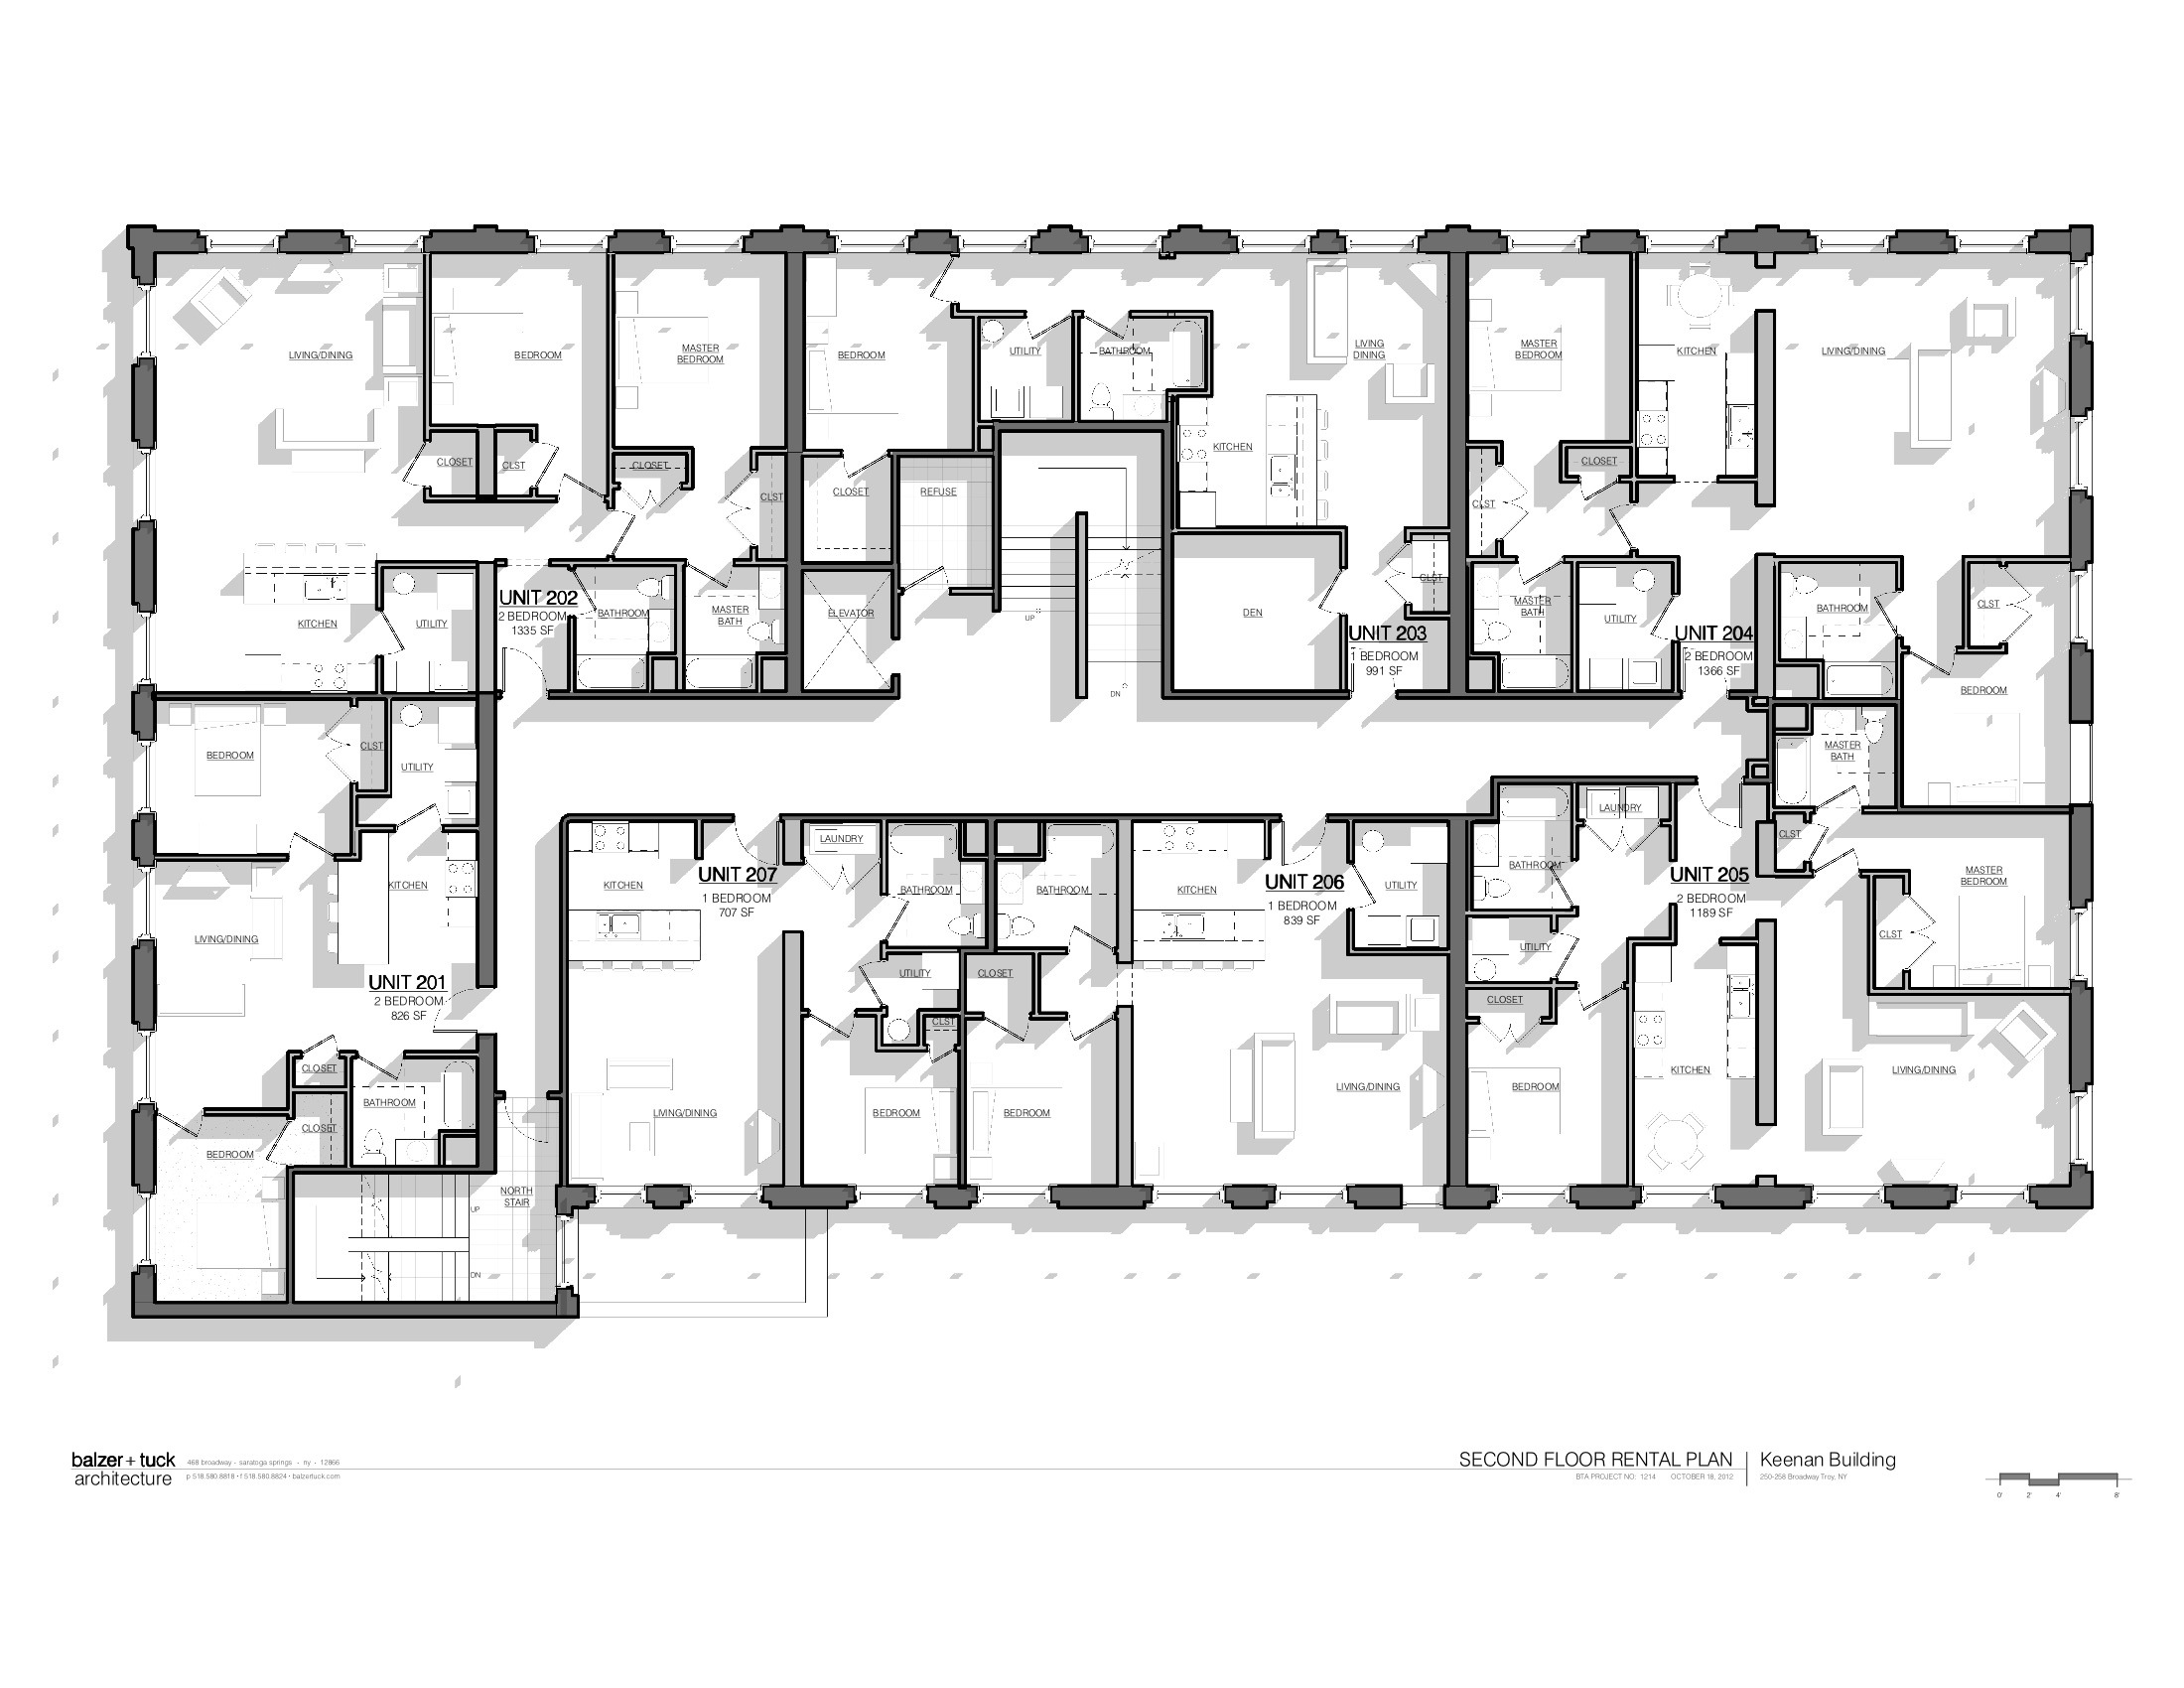 Keenan building floor plans troy new york for New building design plan